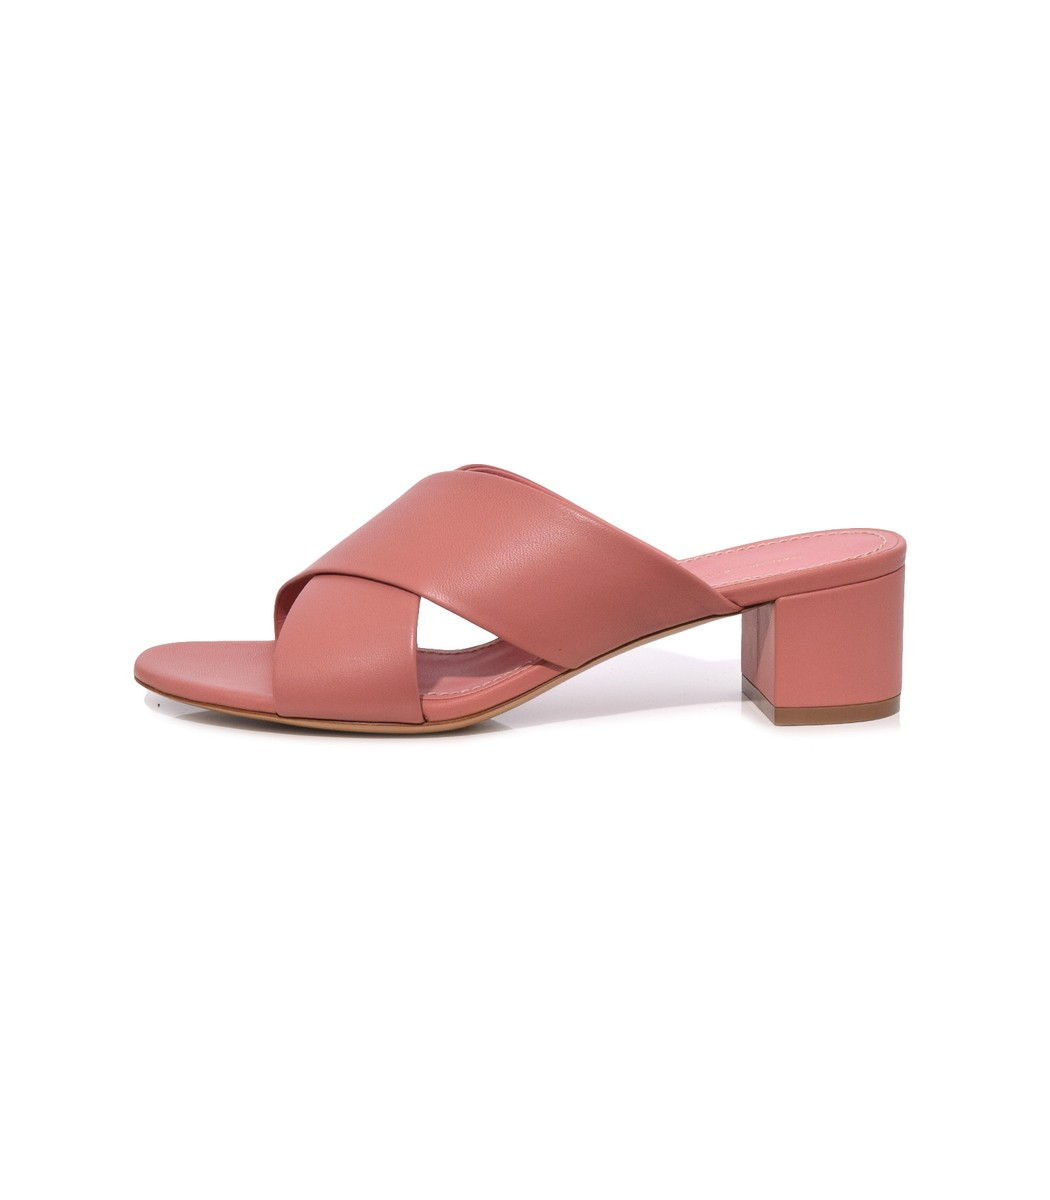 Blush Crossover Sandal